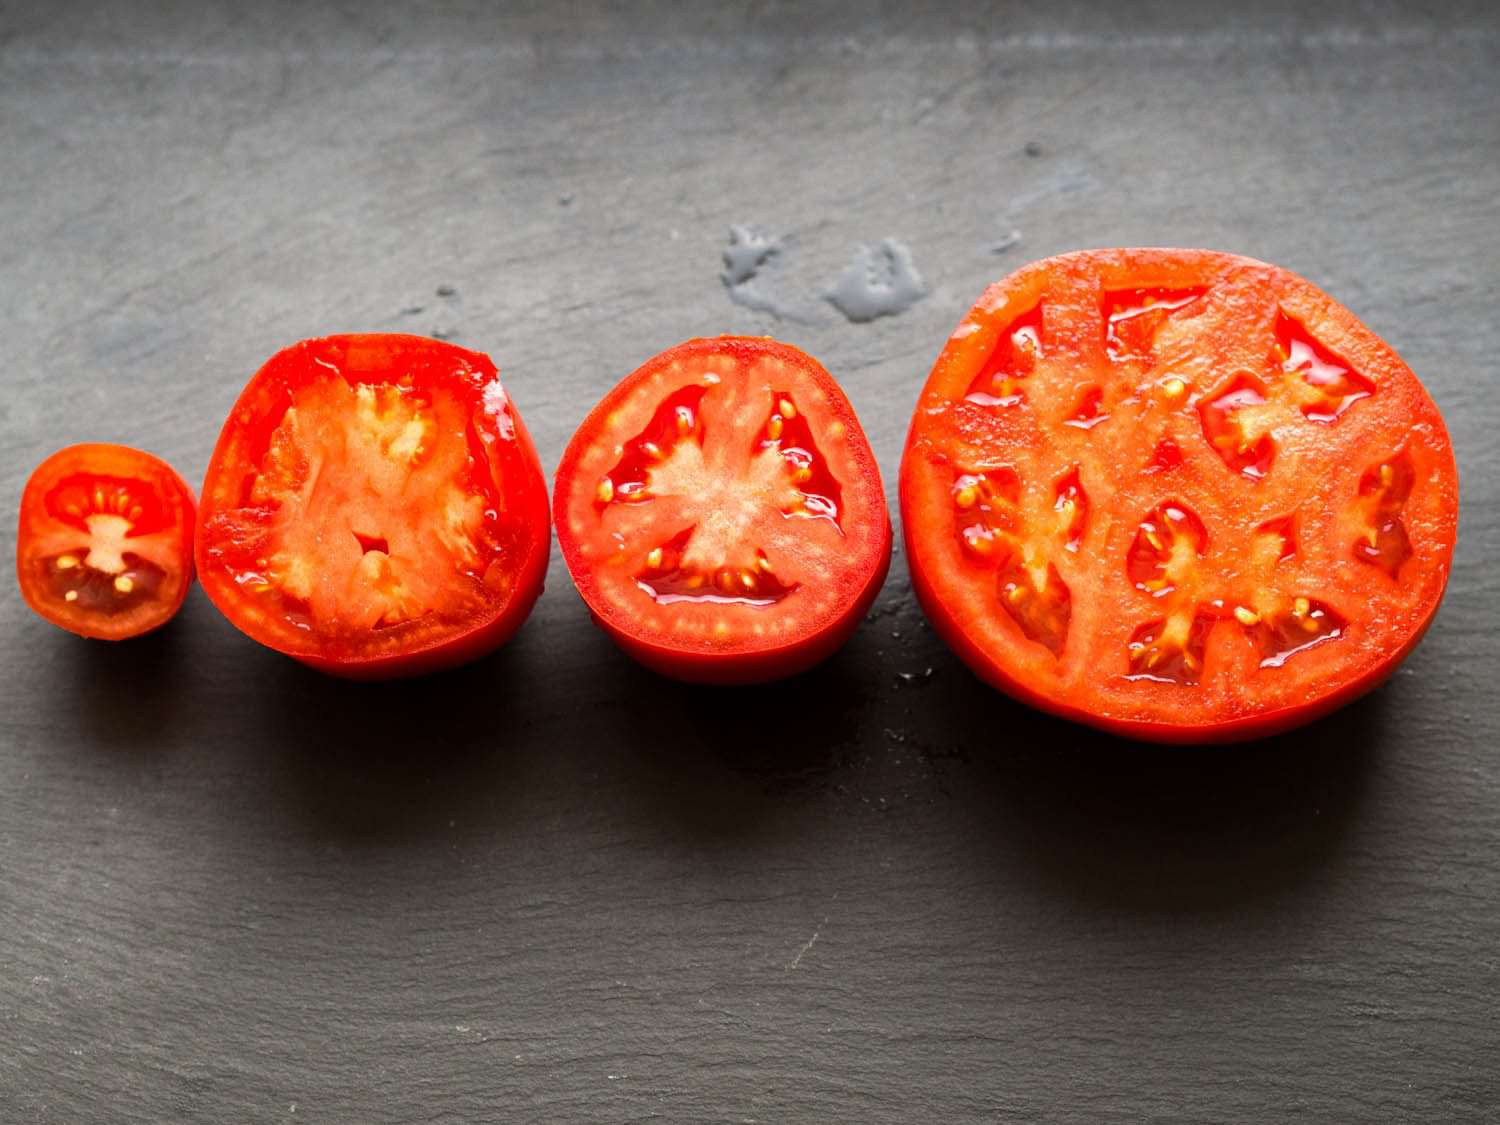 Different varieties of tomatoes cut in half, cut sides facing up